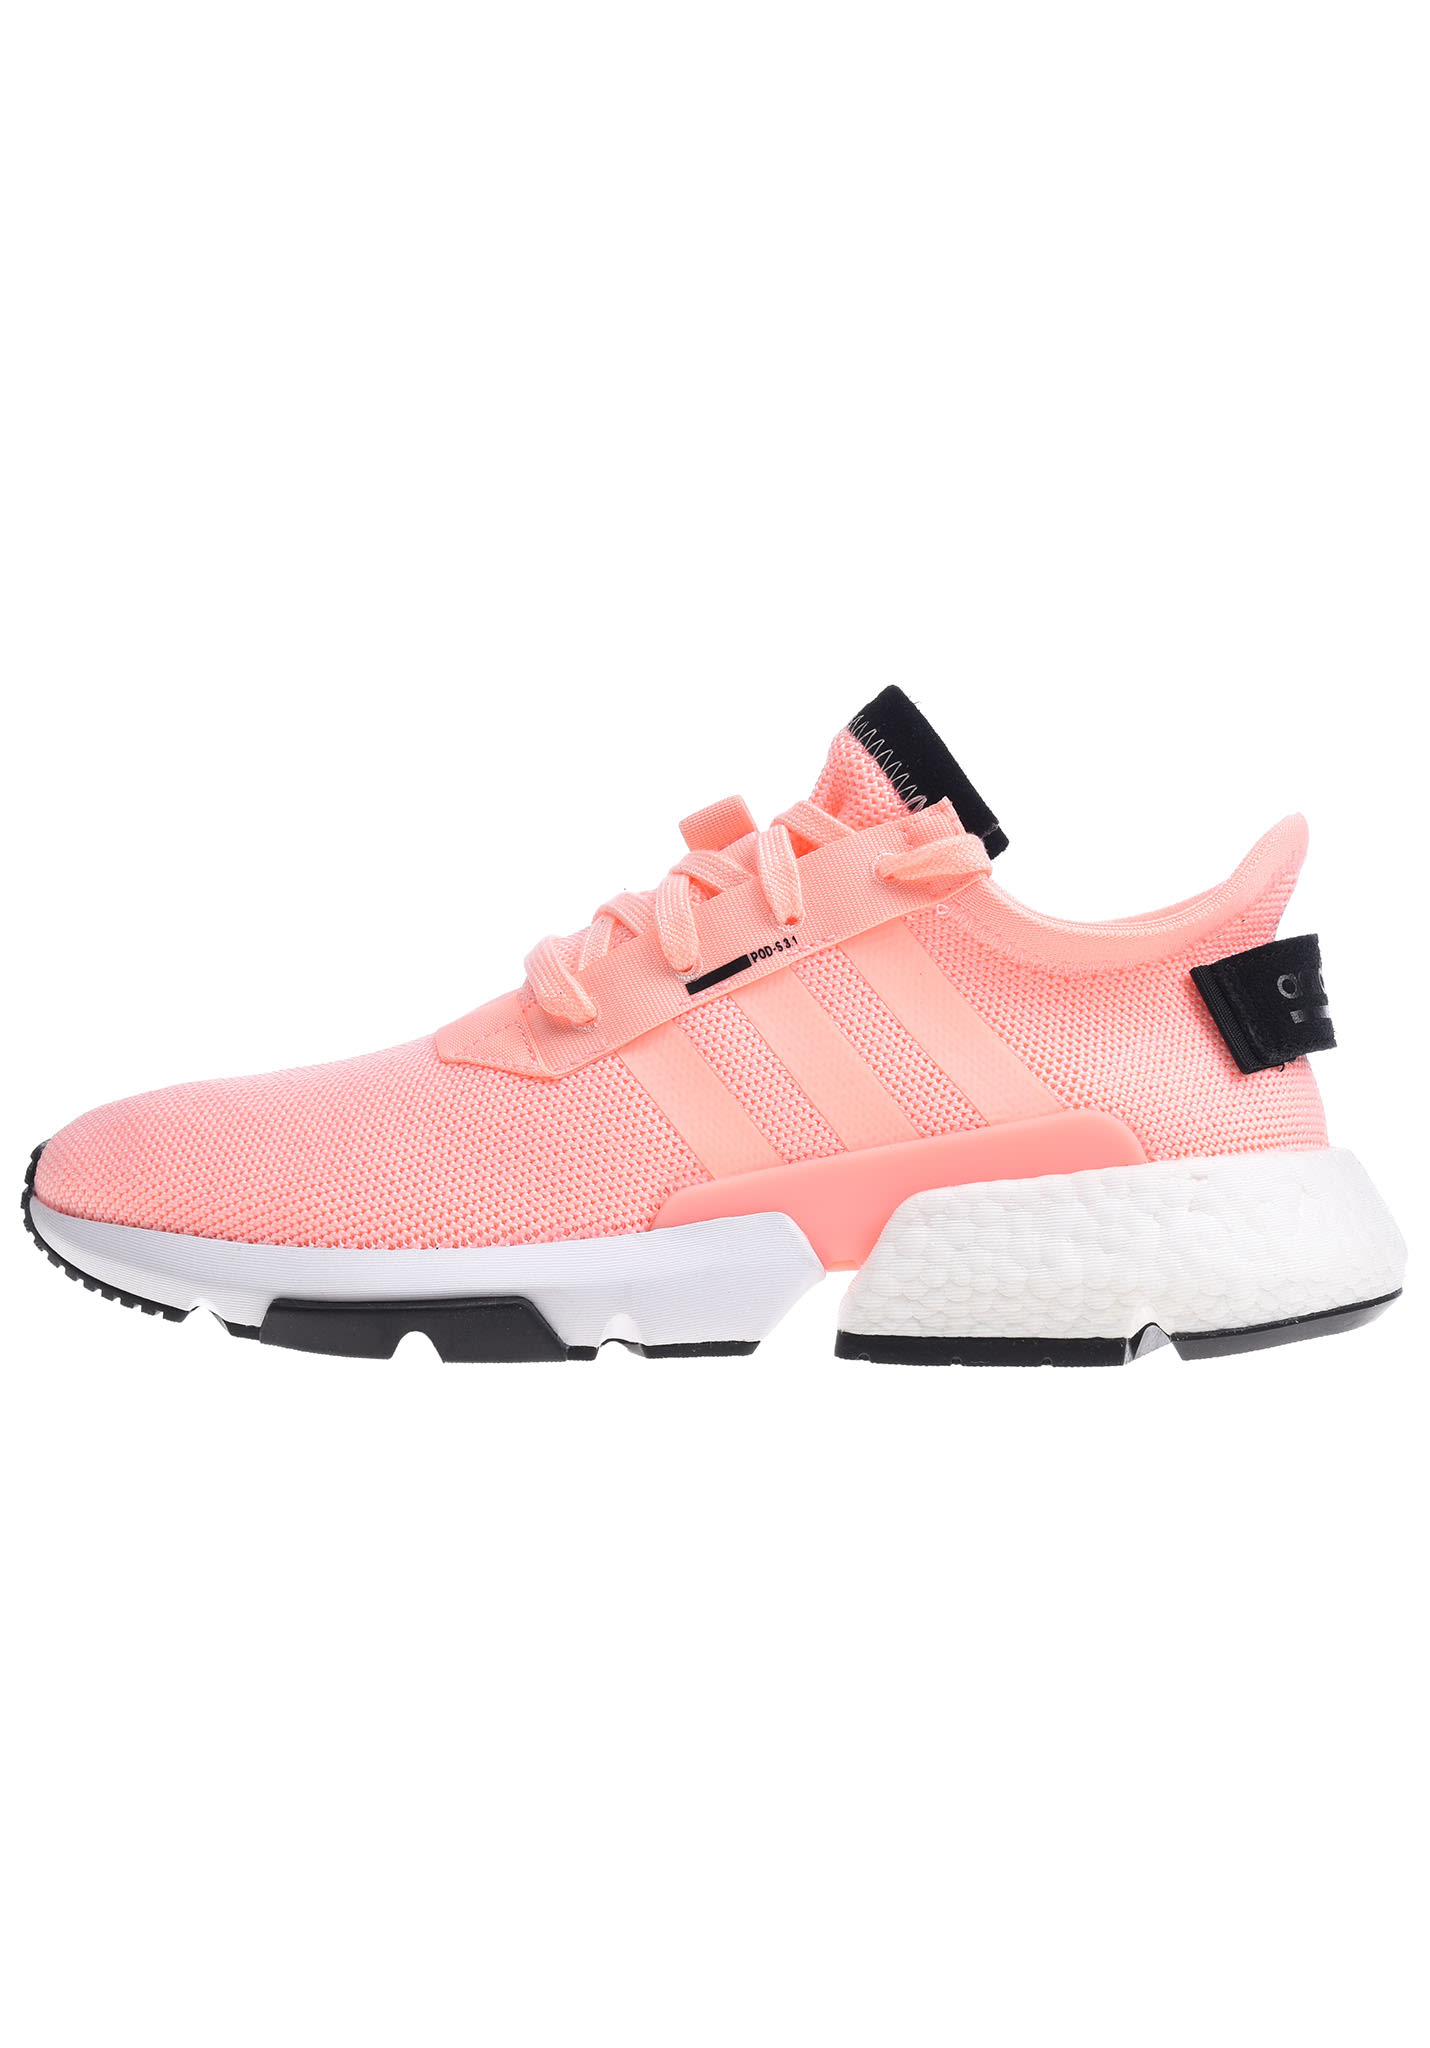 best cheap attractive price excellent quality ADIDAS ORIGINALS POD-S3.1 - Sneakers for Men - Pink